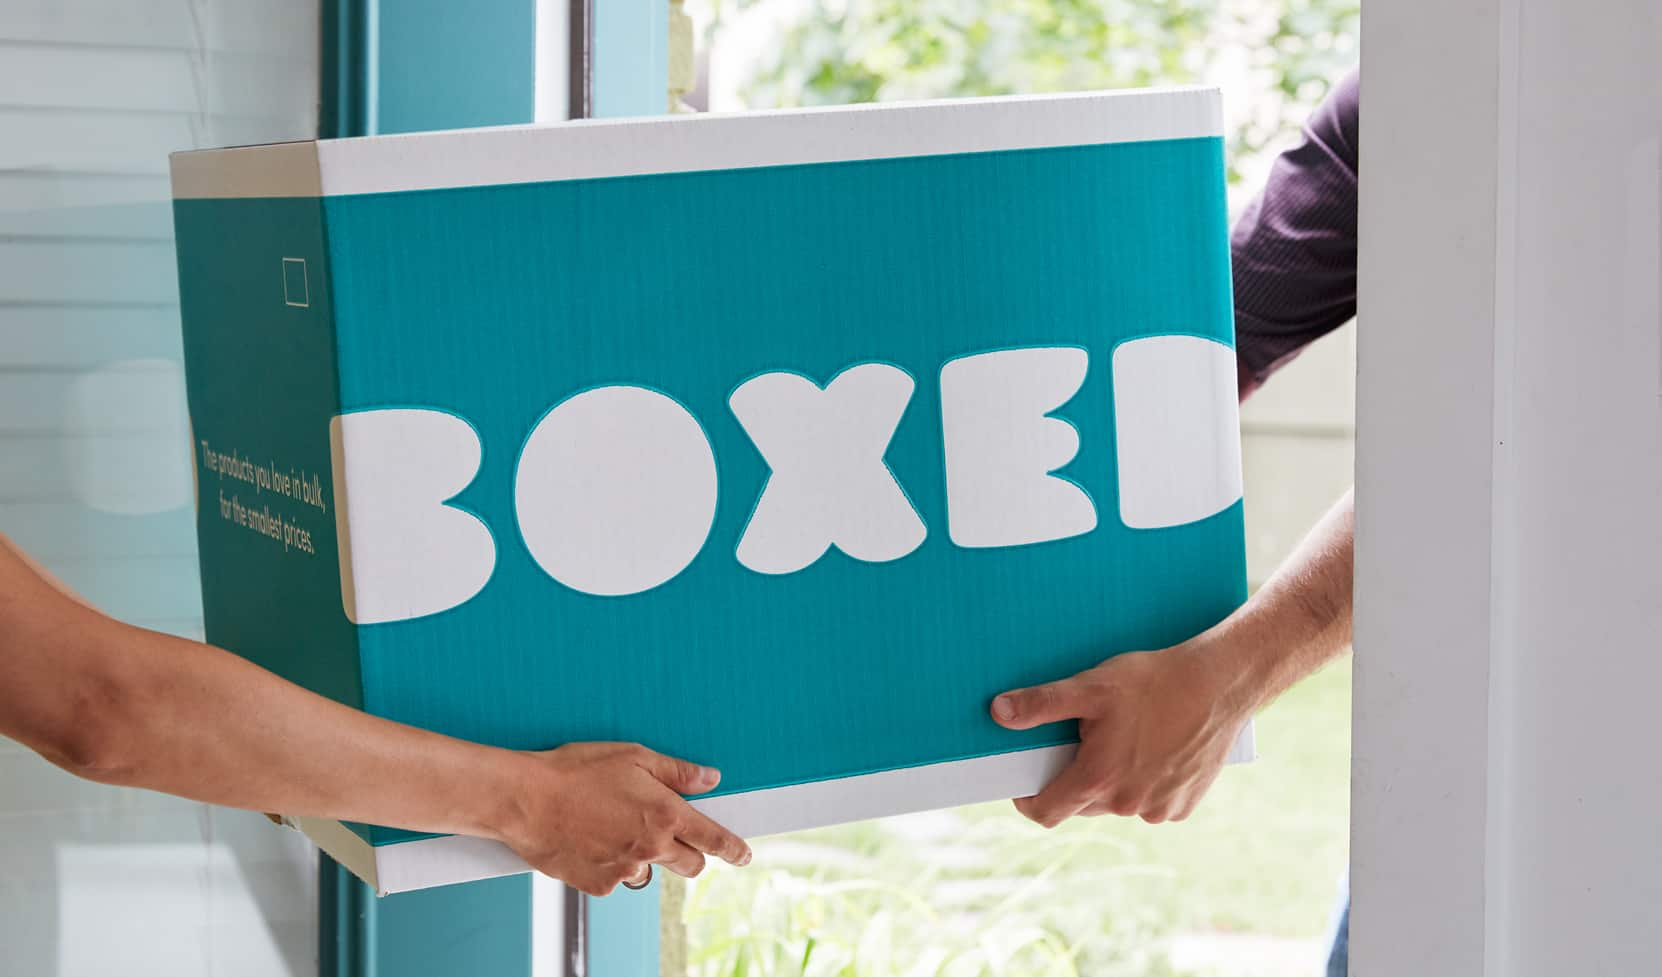 Boxed Wholesale vs Costco: Is Boxed Cheaper Than Costco?